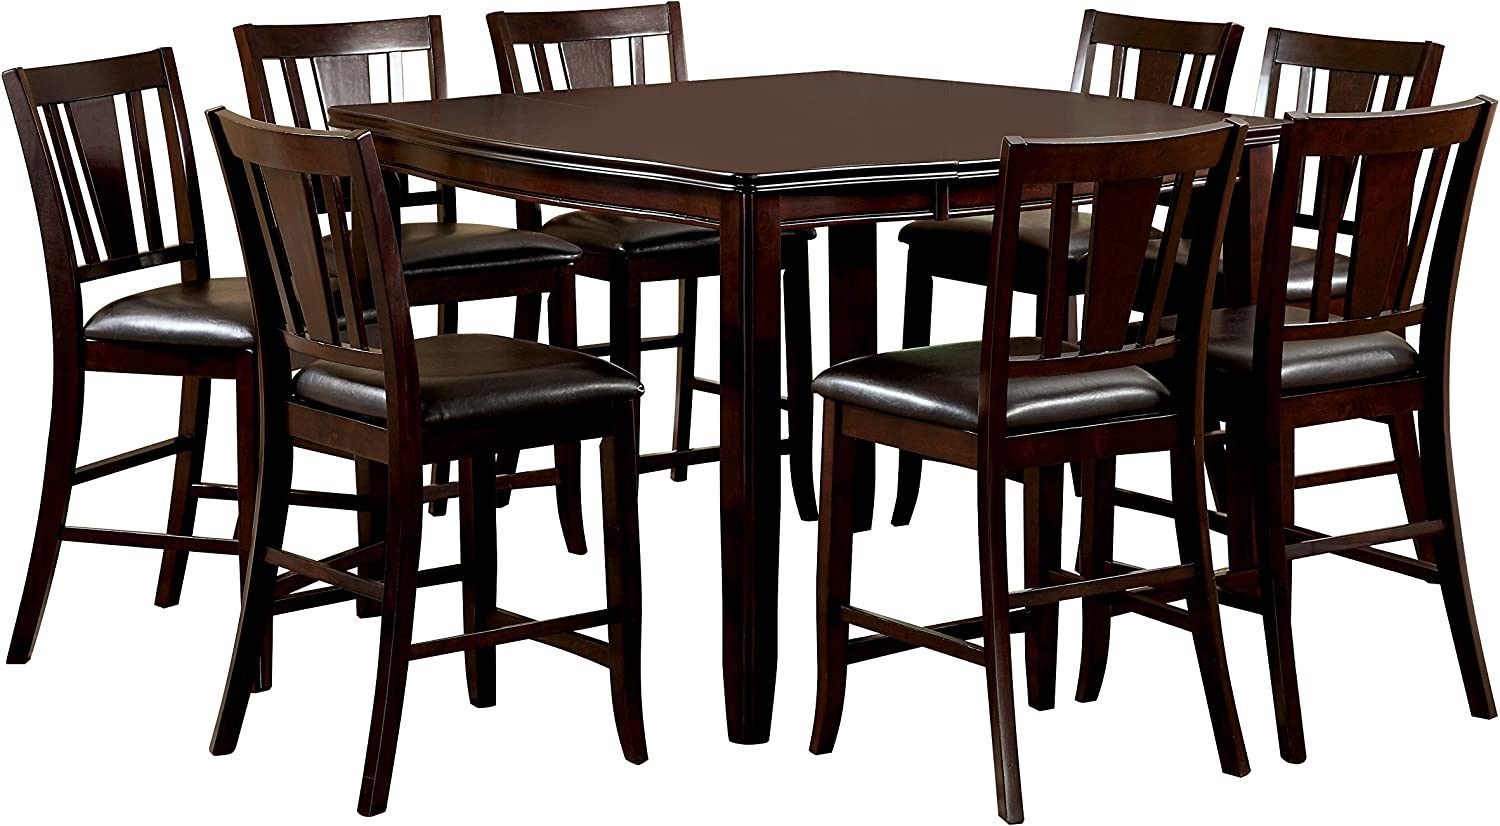 Furniture of America Frederick 9-Piece Square Counter Height Table Set with 16-Inch Expandable Leaf, Espresso Finish